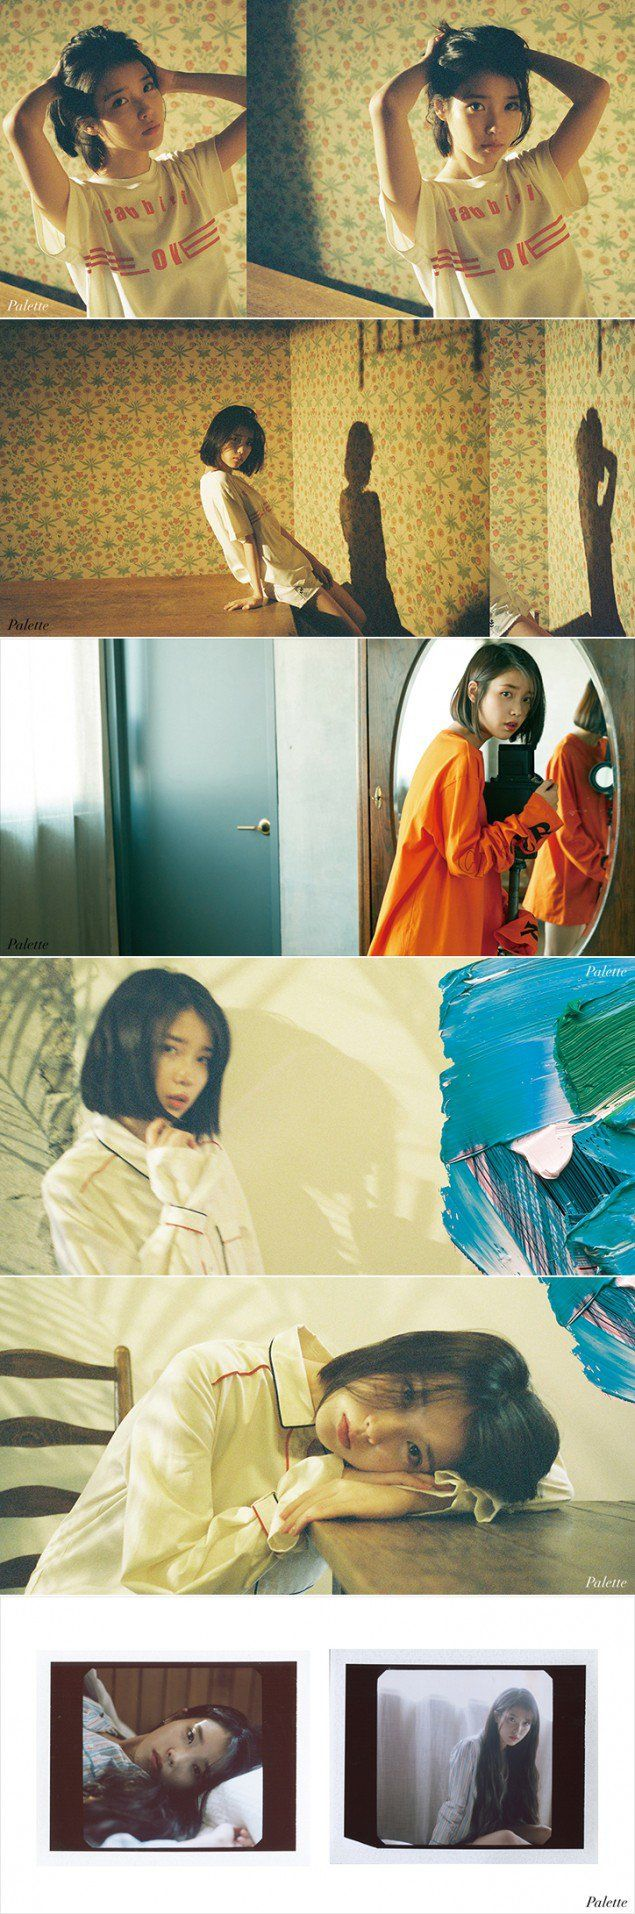 IU Releases Photo and Video Teaser for New Track 'Palette' | Koogle TV